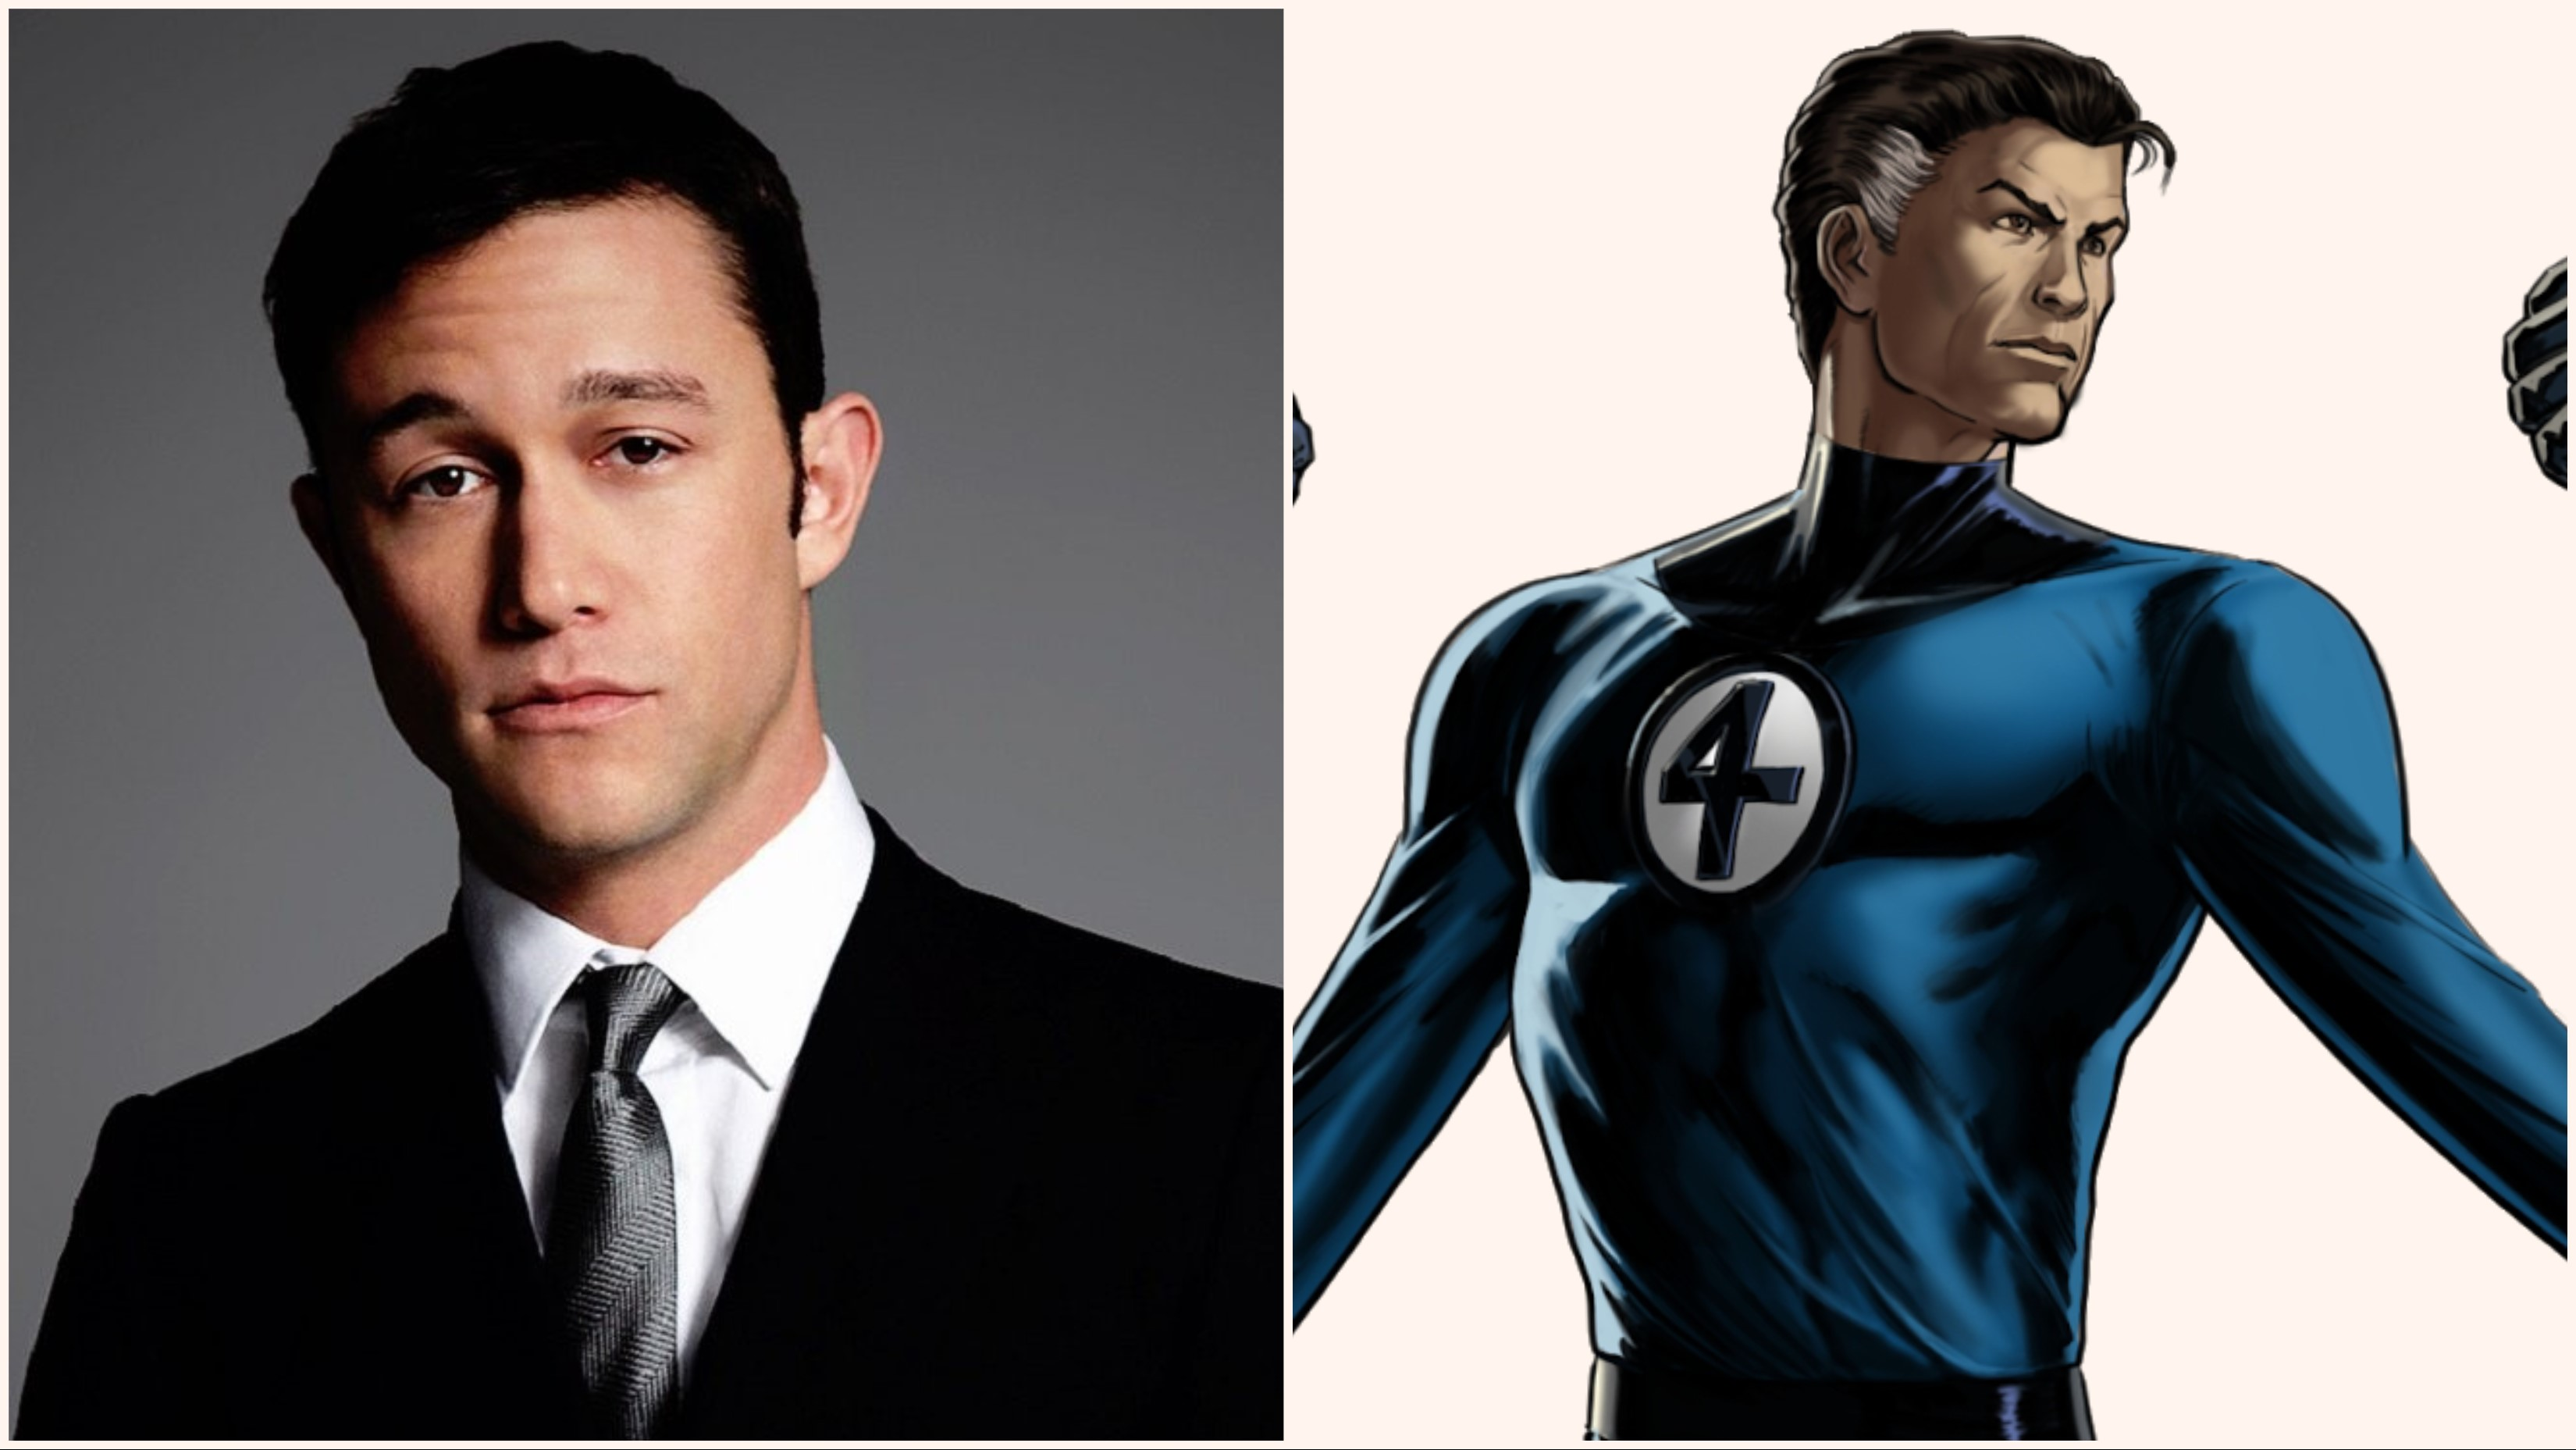 JOSEPH GORDON-LEVITT AS REED RICHARDS/MISTER FANTASTIC